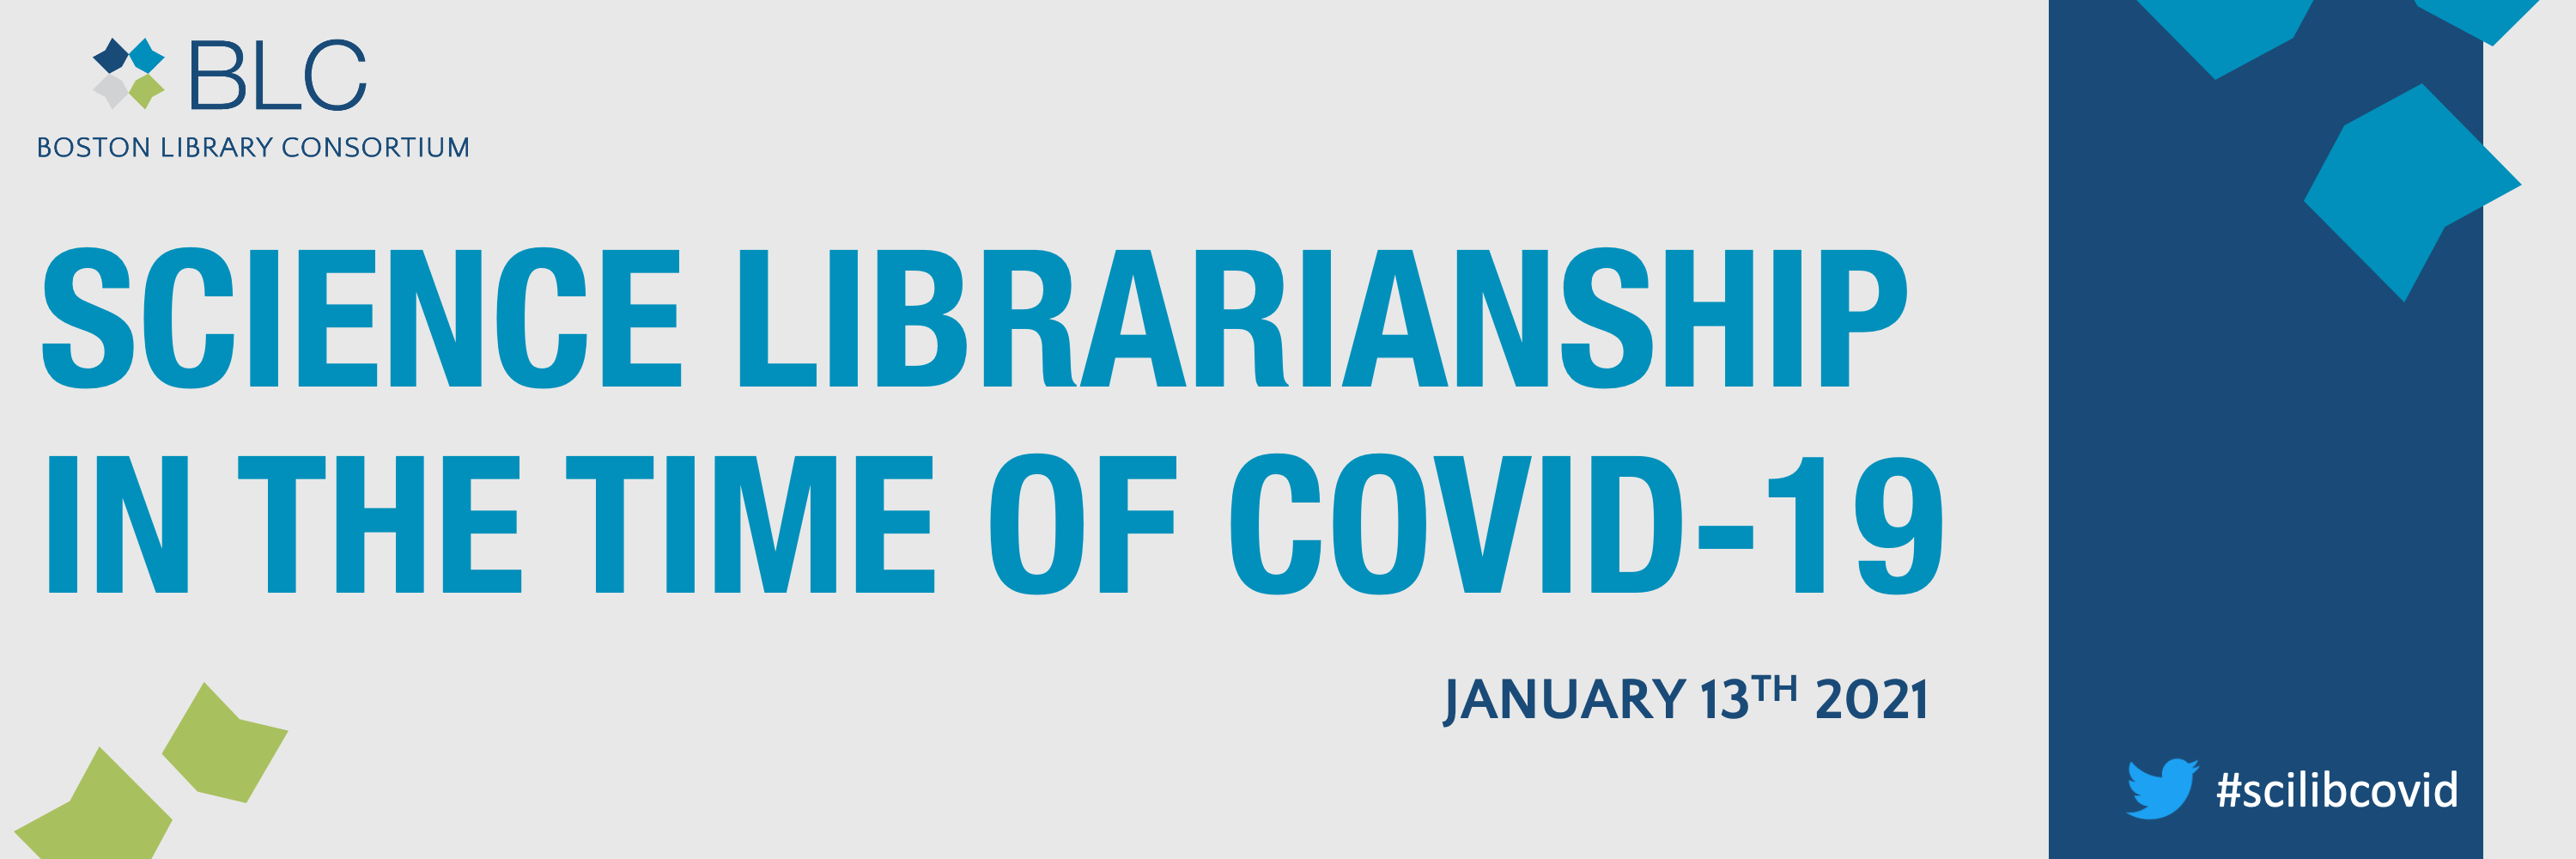 Science Librarianship in the time of COVID-19